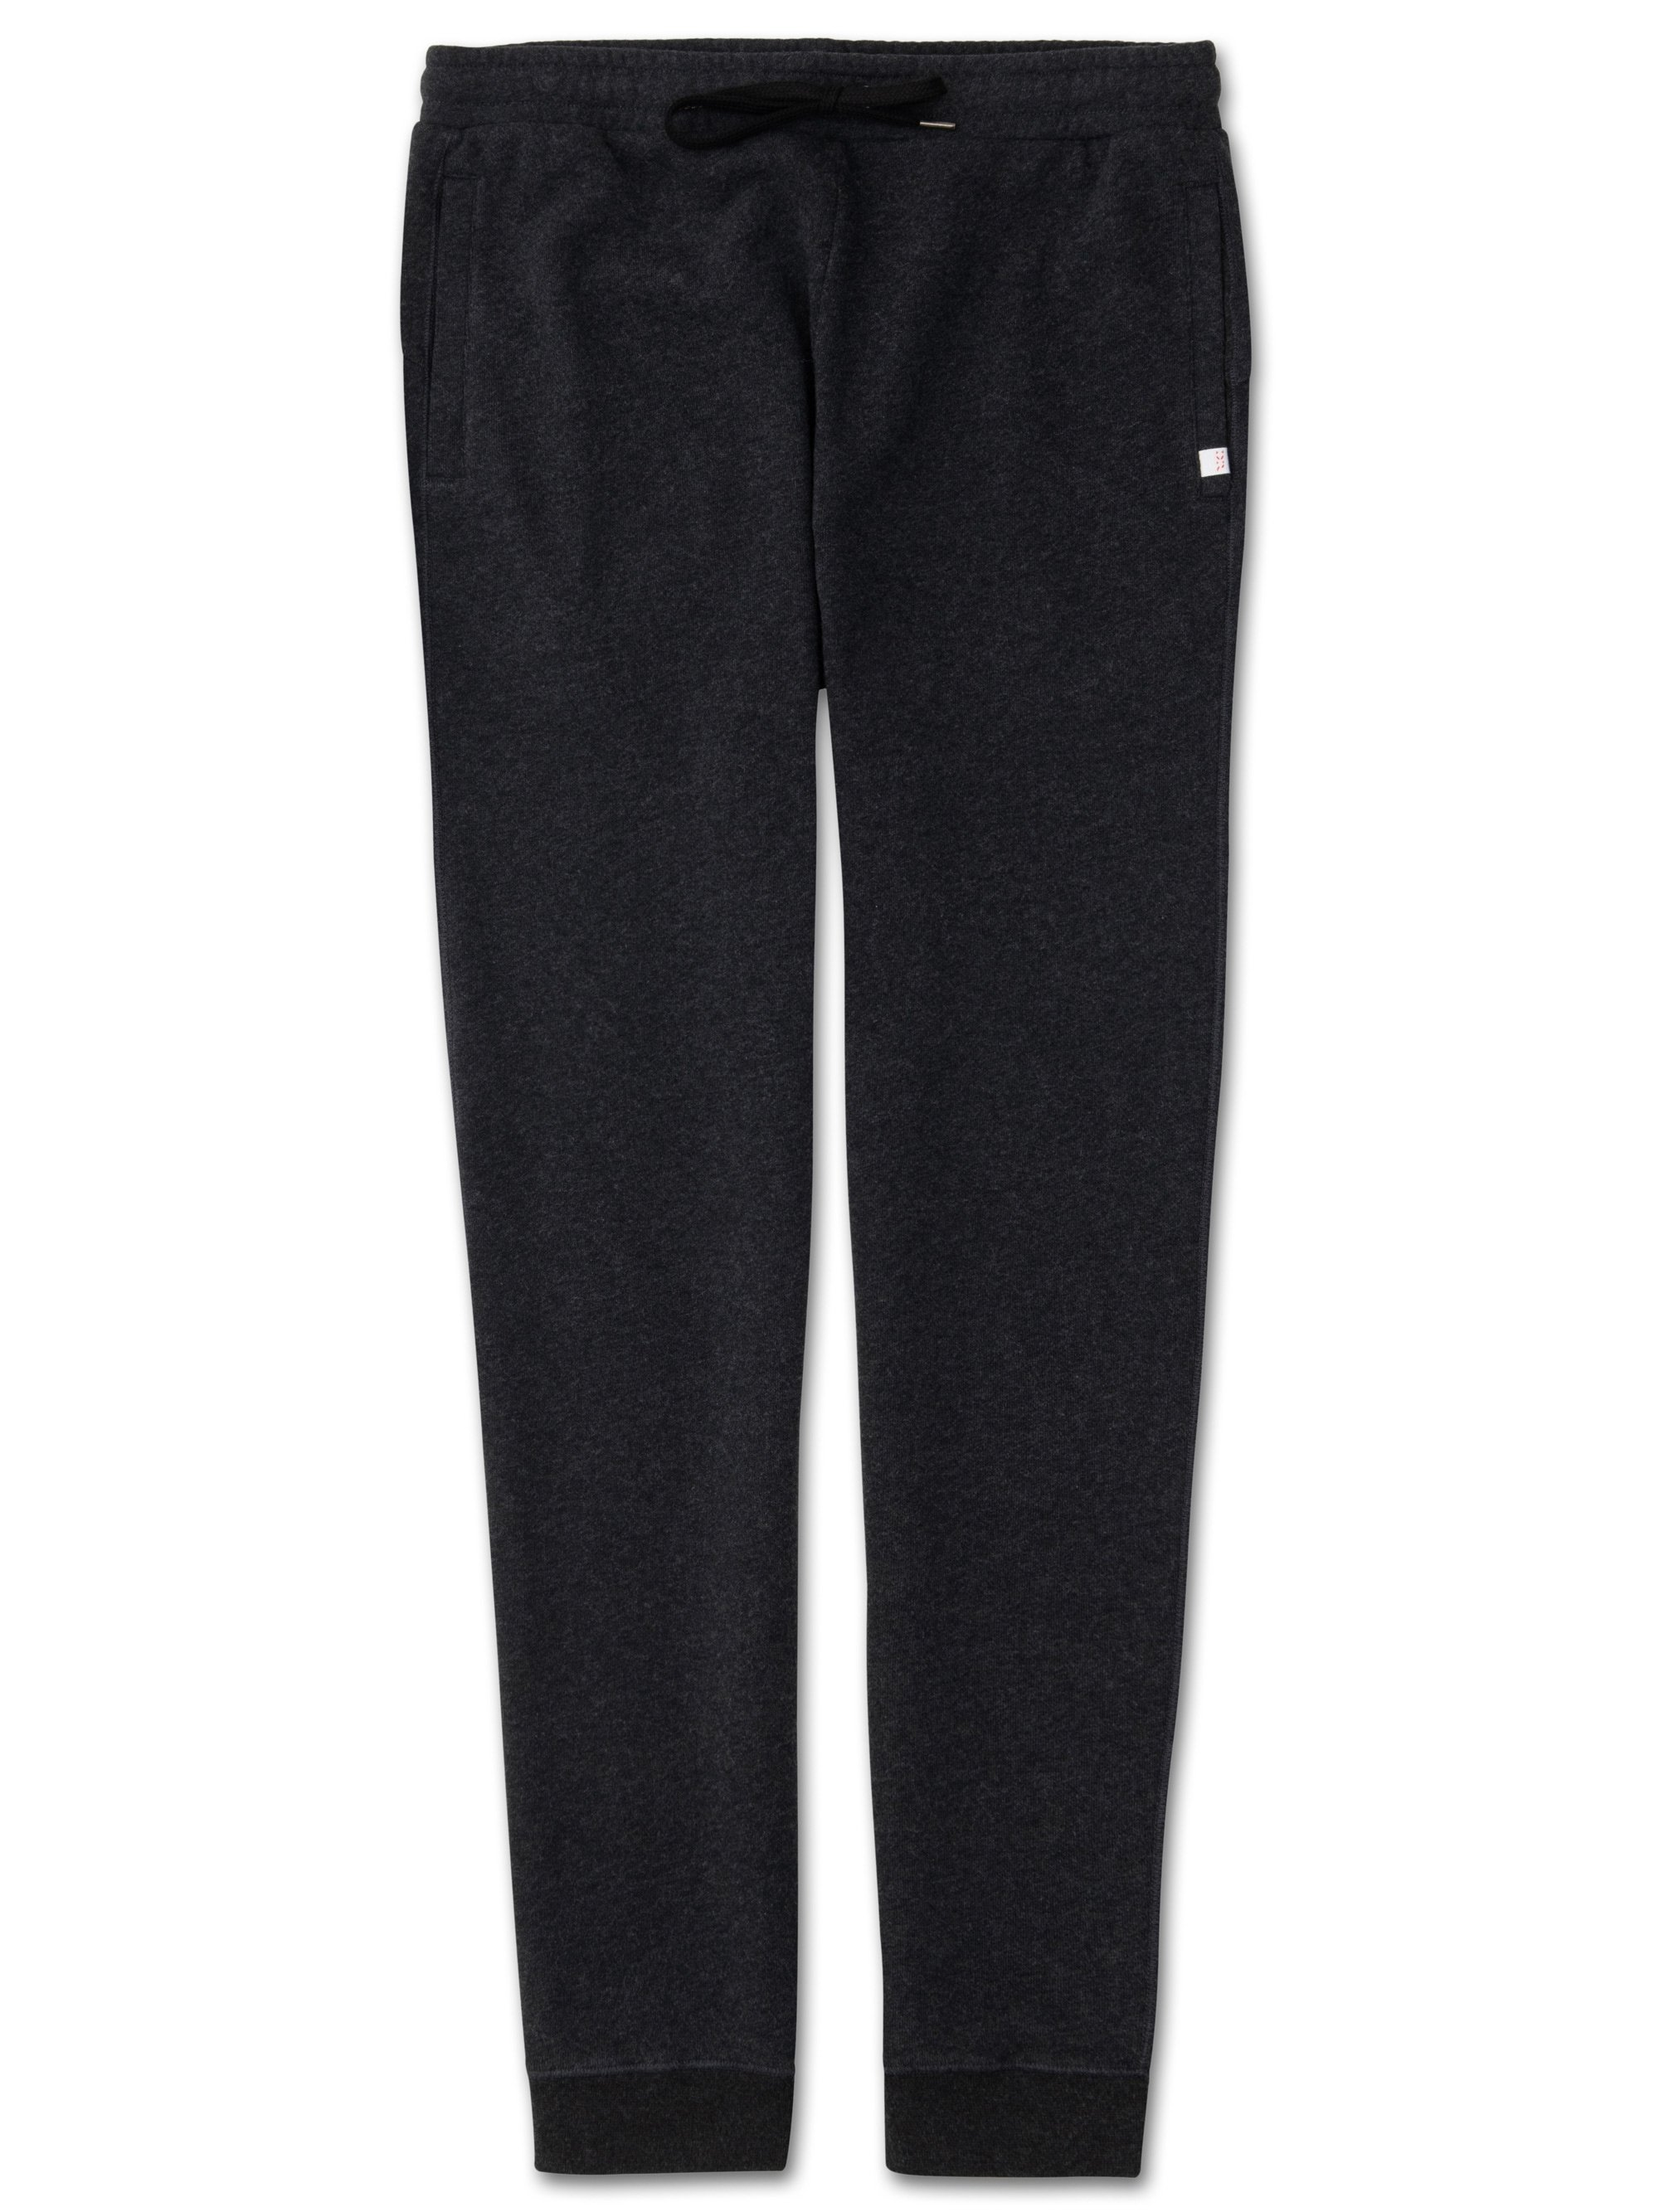 Men's Sweatpants Devon Loopback Cotton Charcoal